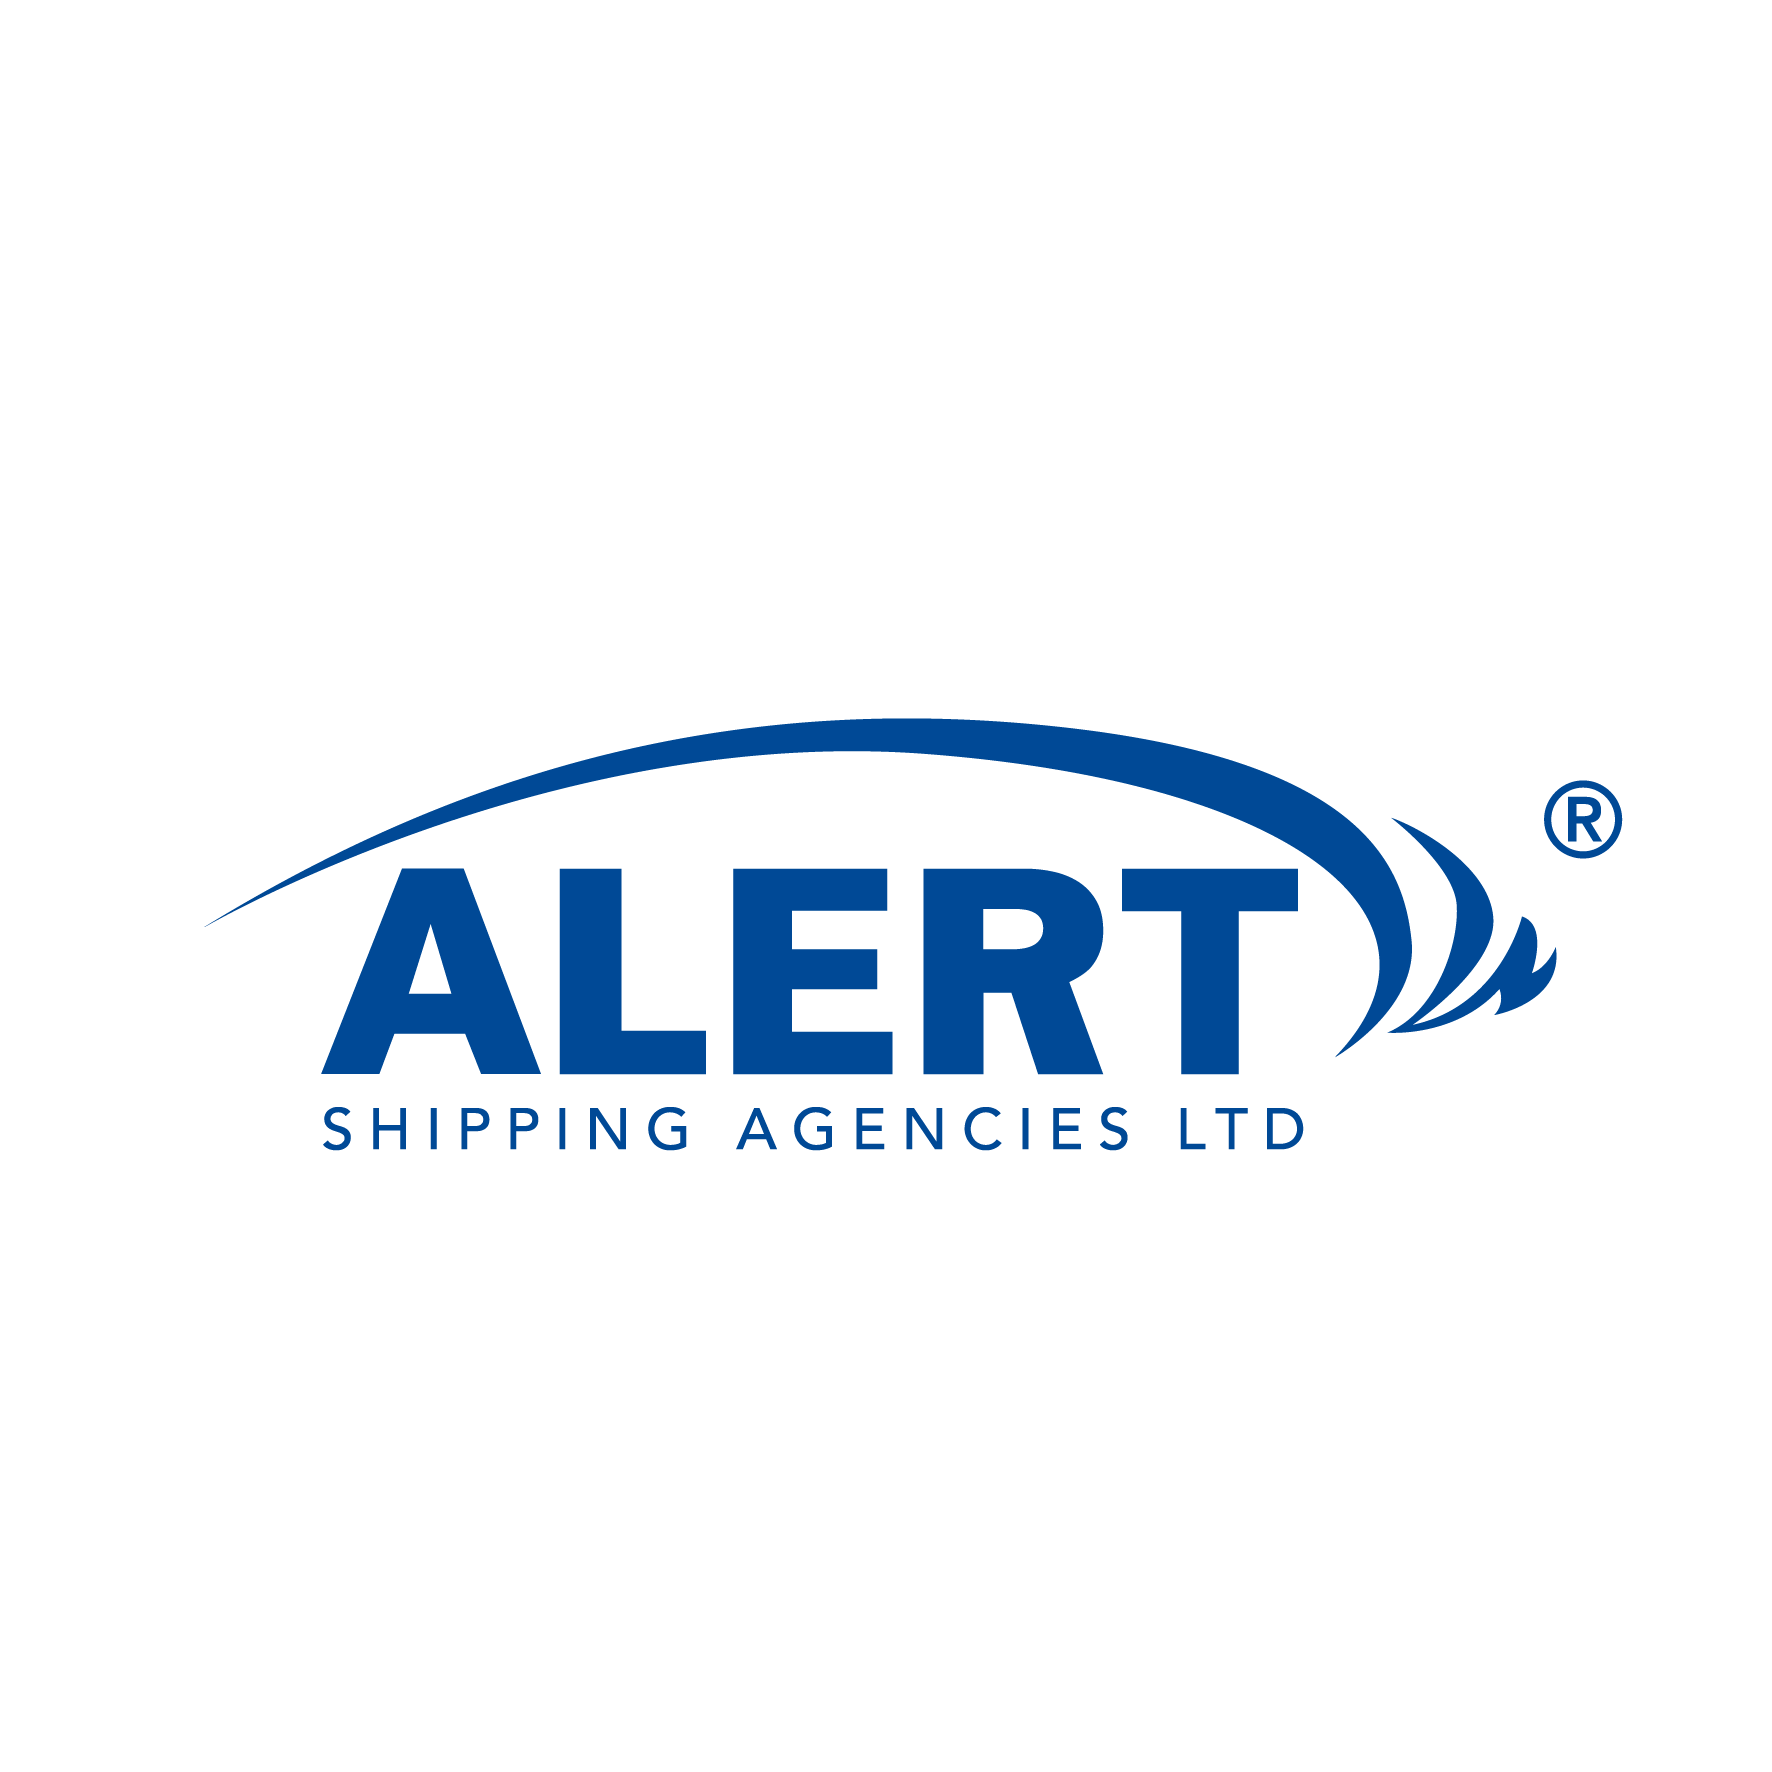 ALERT SHIPPING AGENCIES LTD